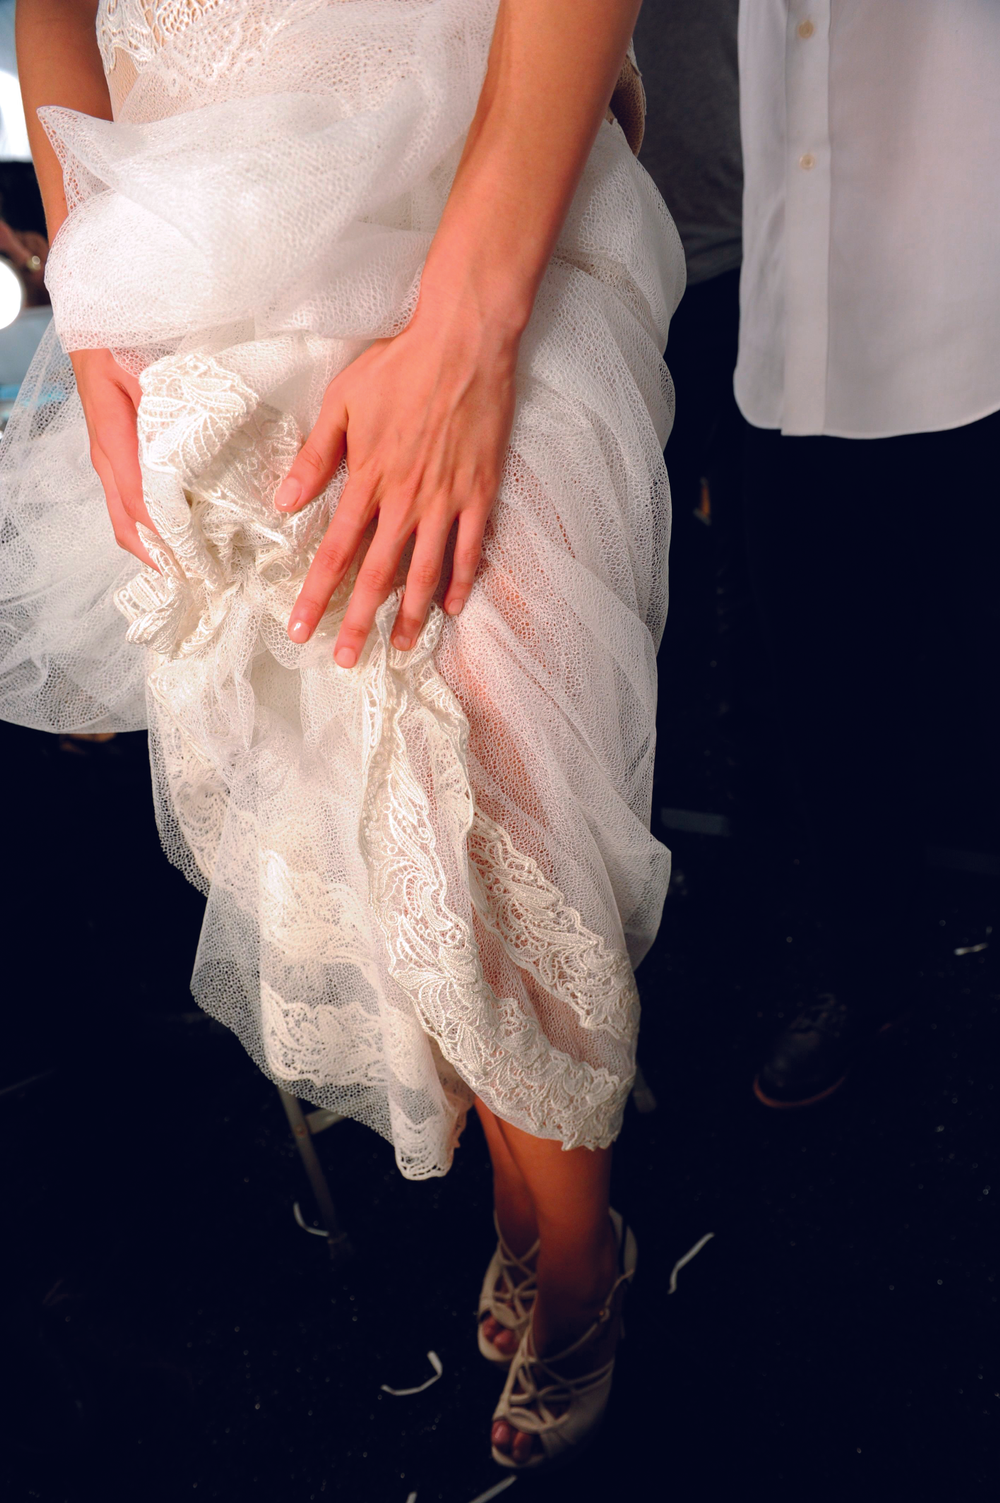 <p><strong>China Glaze</strong> Nude was used for manicures at the Tadashi Shoji (shown) and Porter Grey shows. At Tadashi Shoji, China Glaze Innocence was used on toes. The neutral shades accentuated the ethereal gowns for which Tadashi Shoji is known. The nail tech team was led by Josephine More, who was assisted by Danielle Candido, Lauren Baranowski, and&nbsp;Natalie Figorotta-Frank.</p> <p><em>Photography by Matthew Carasella</em></p>